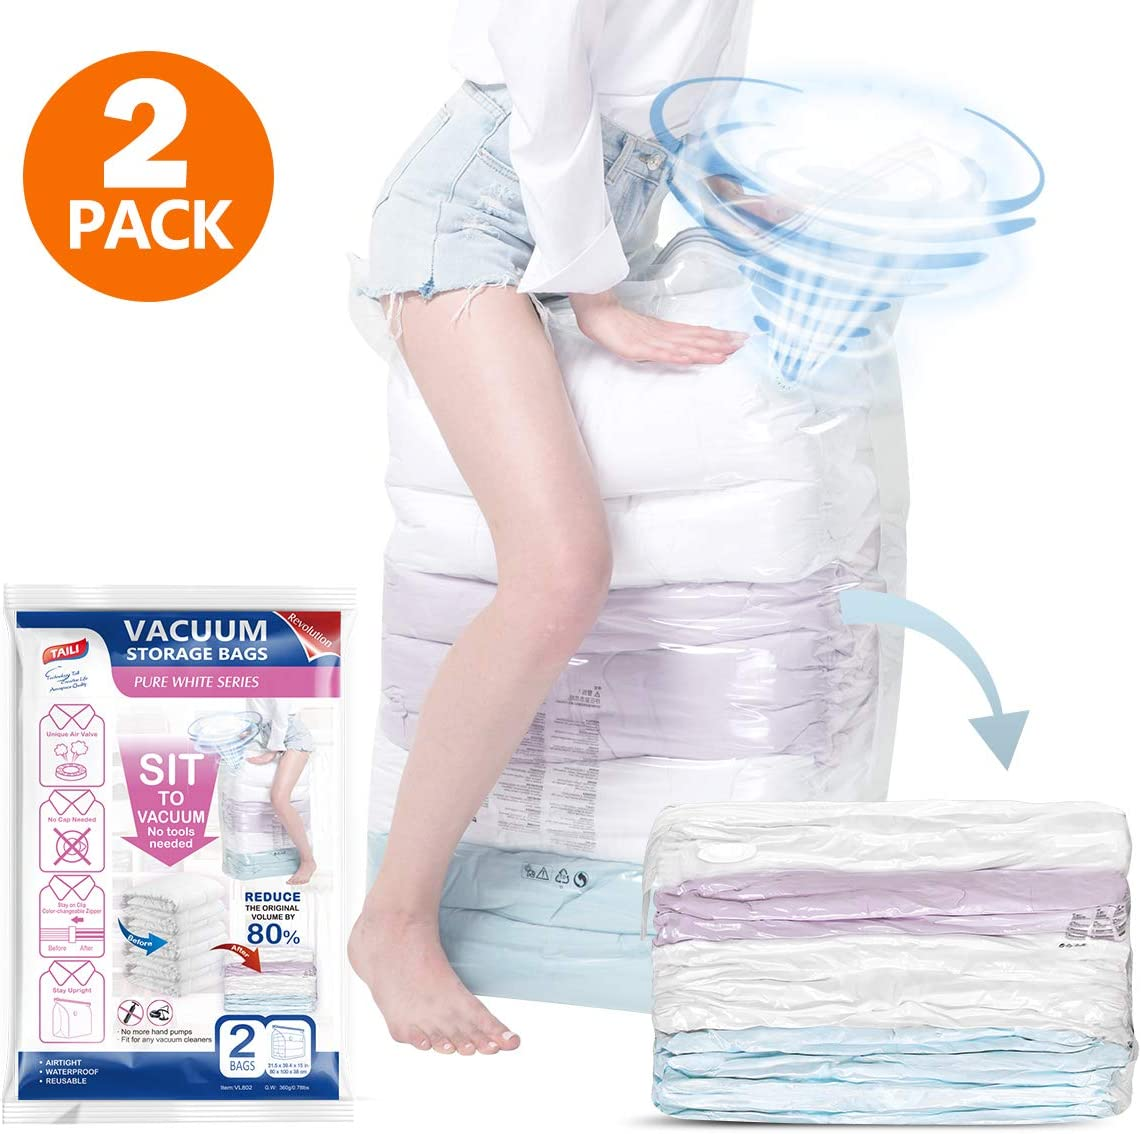 TAILI Vacuum Storage Bags Jumbo Size 2 Pack of 31x40x15 inch, No Pumps Needed, Extra Large Cube Space Saver Bags for Blanket, Comforter, Pillows, Bedding & Clothes